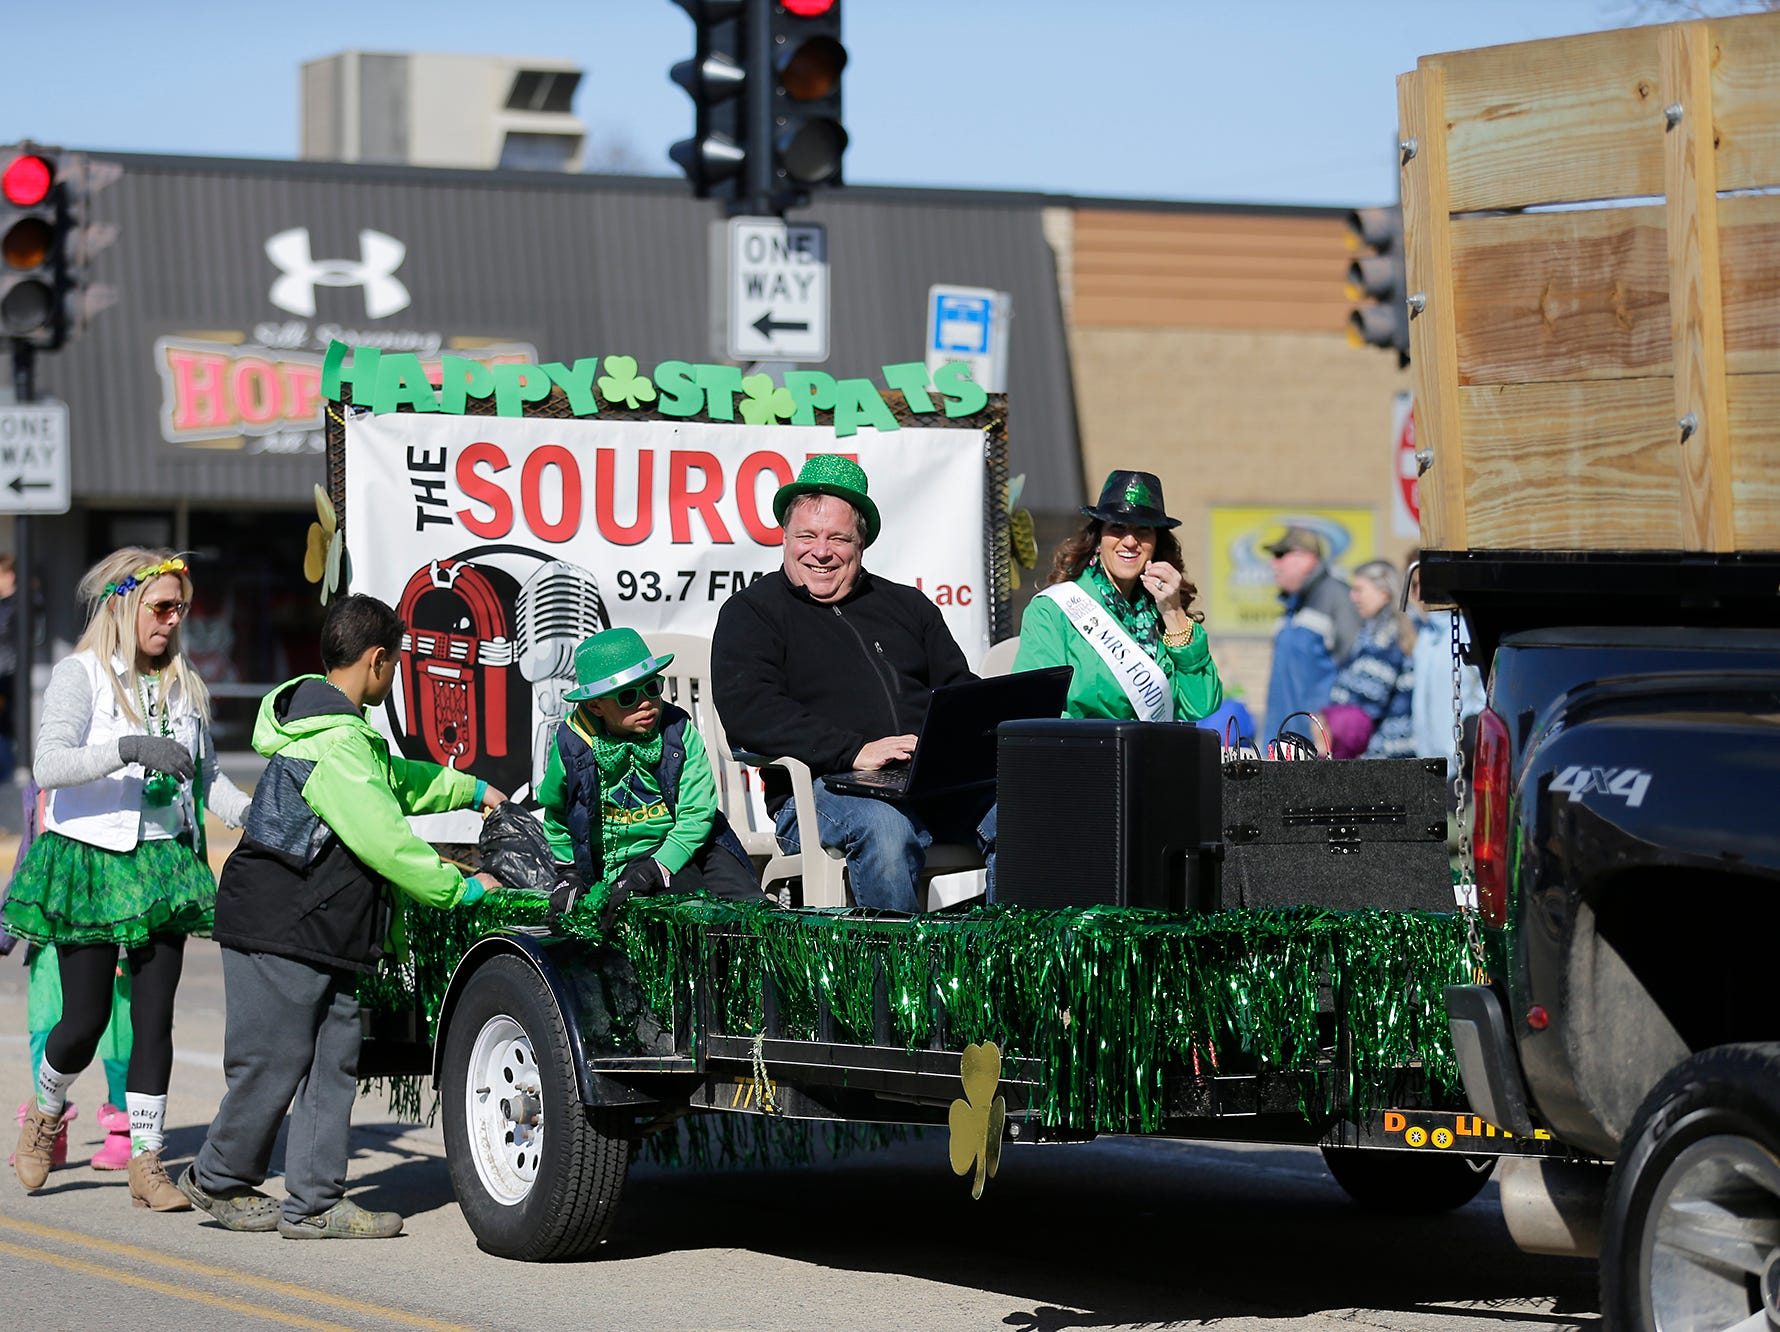 Radio station 93.7 The Source participated in the City of Fond du Lac St. Patrick's Day Parade Saturday, March 16, 2019 on Main Street in downtown Fond du Lac. Hundreds of people lined the street to watch over 50 parade participants. Doug Raflik/USA TODAY NETWORK-Wisconsin